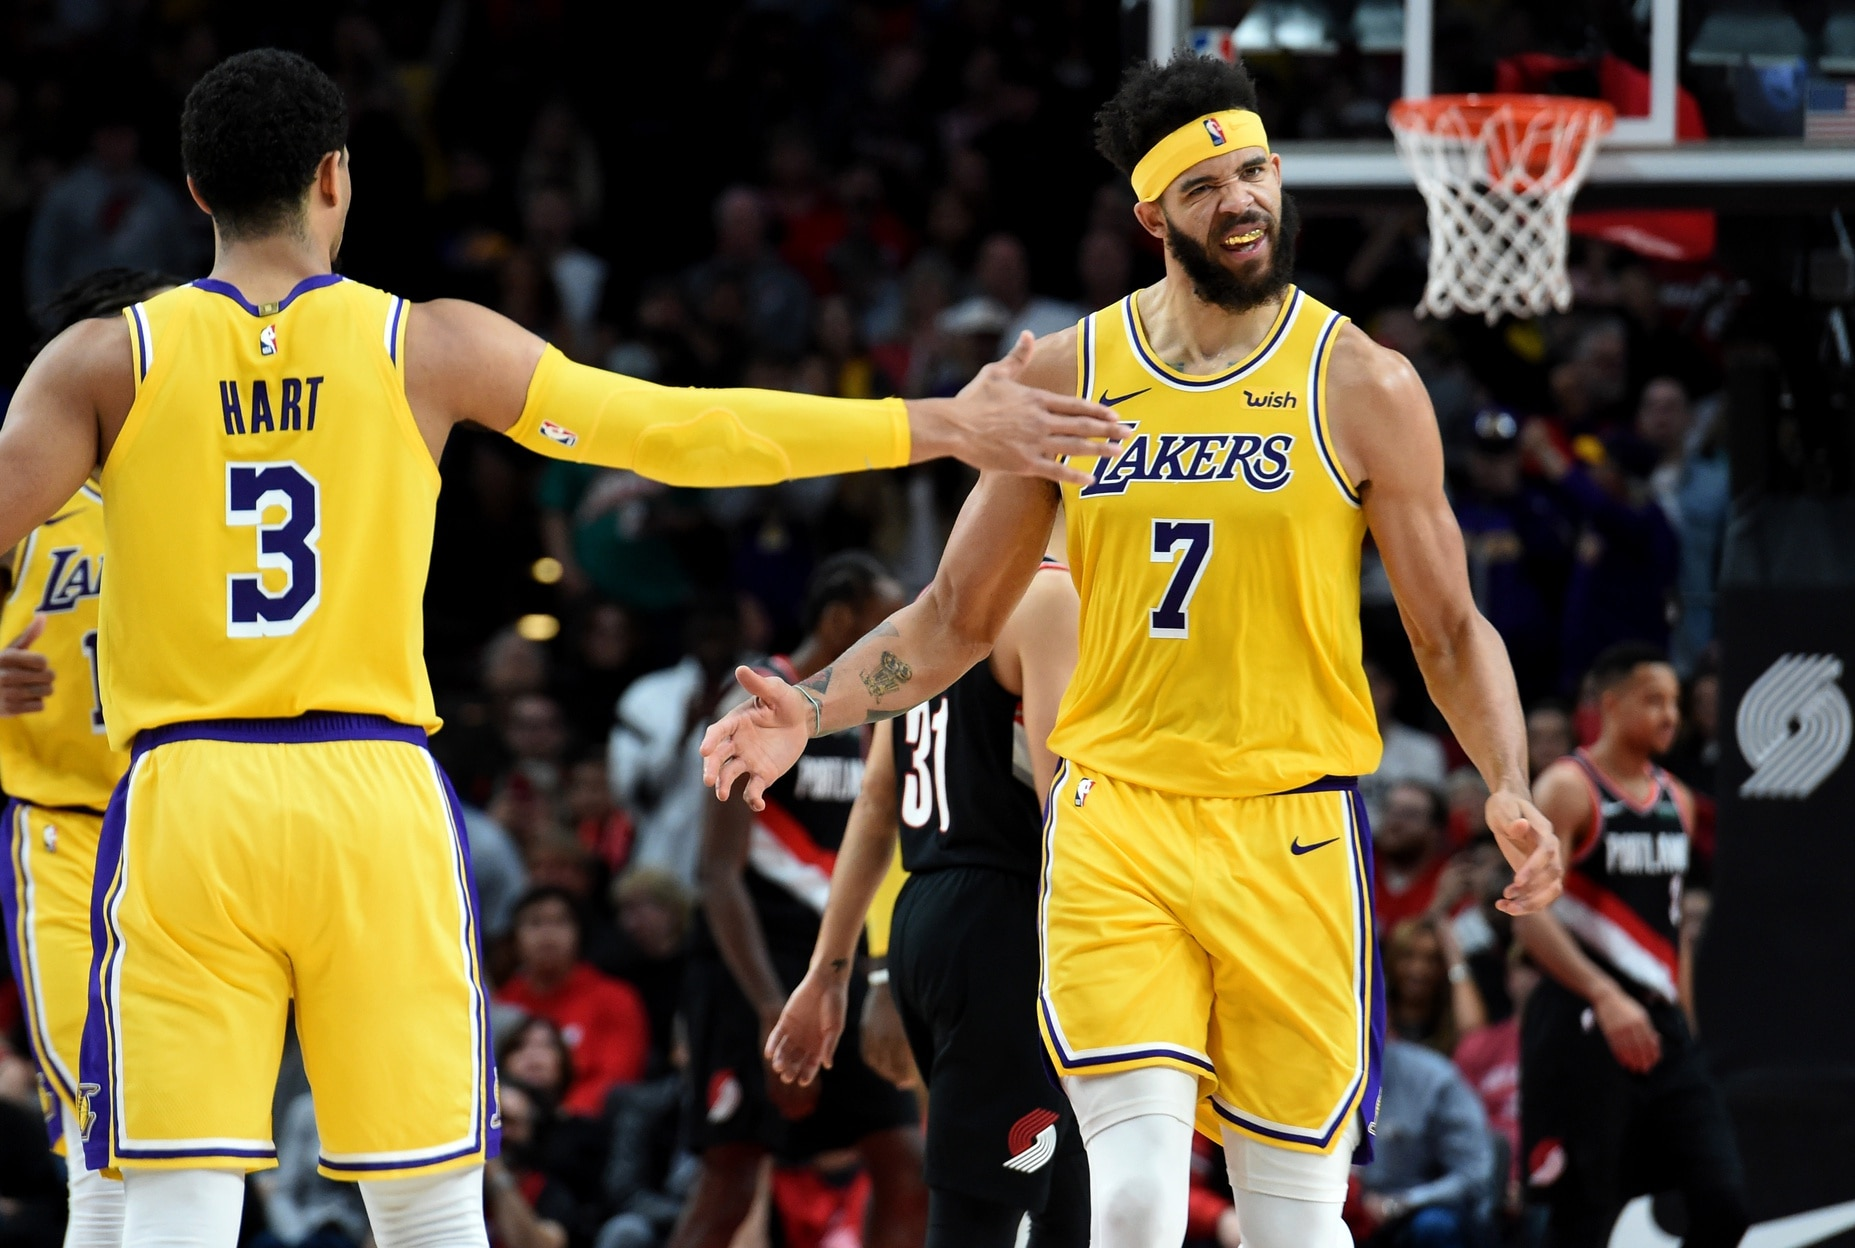 super popular 2e21a 897b7 Lakers' JaVale McGee has championship ring stolen in burglary